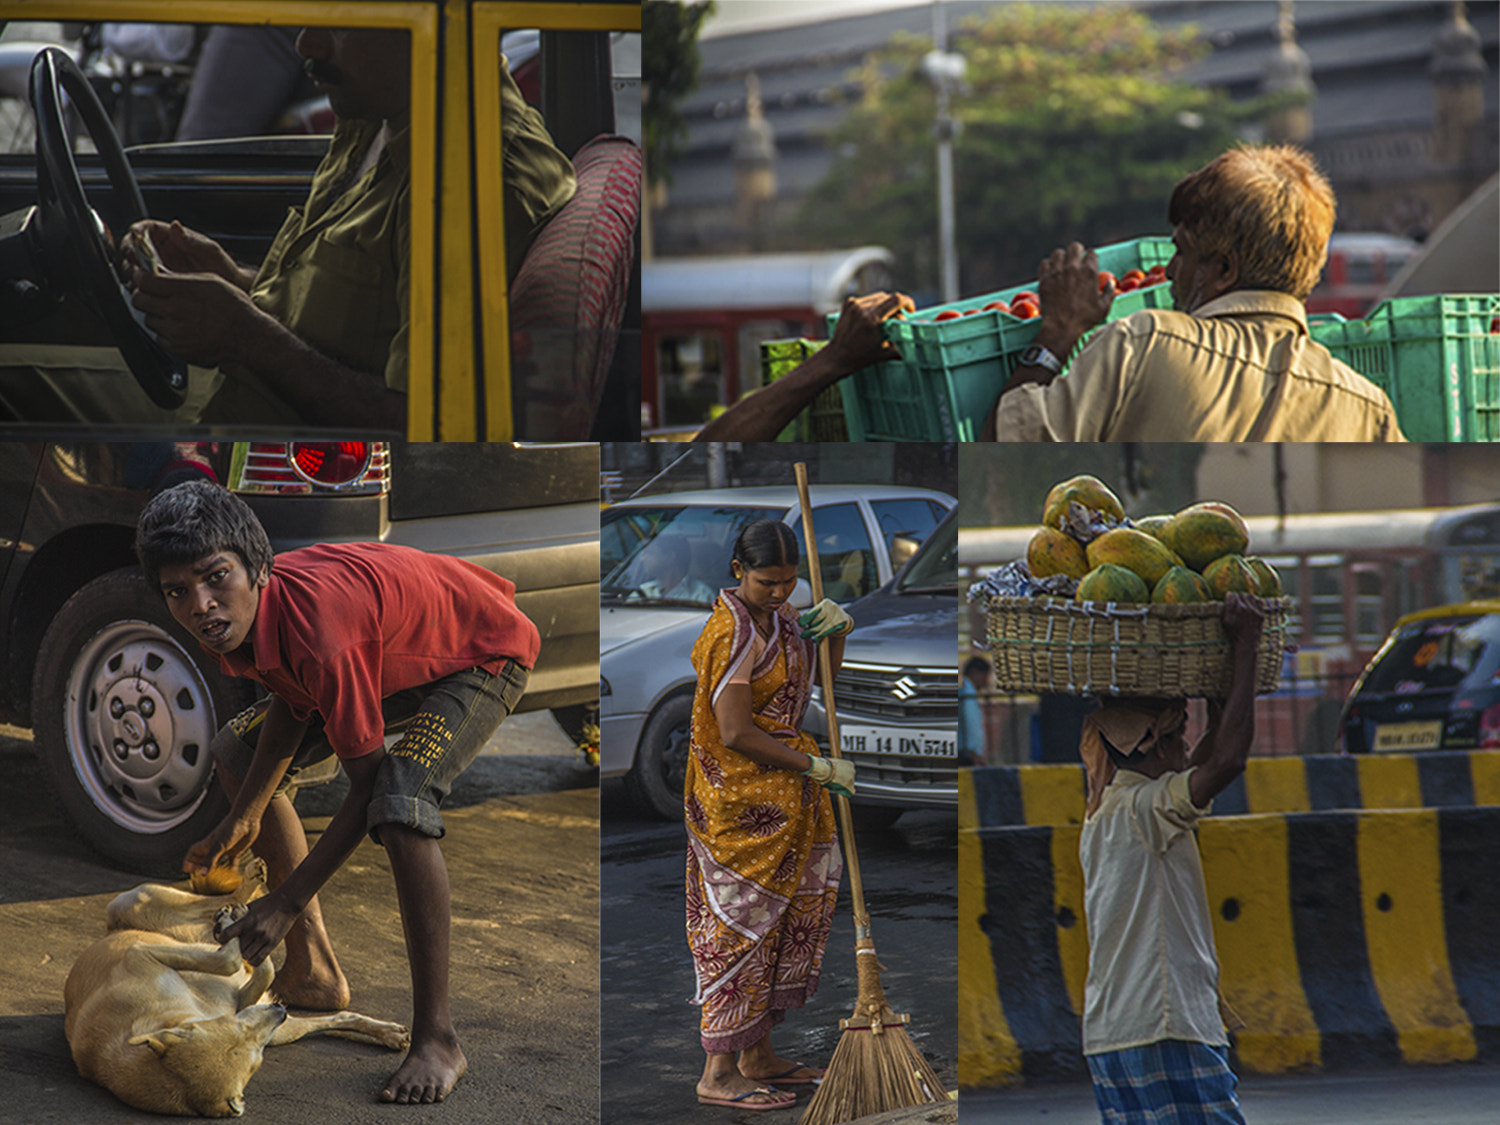 Photograph Morning. People. Mumbai by Swapnil Sonawane on 500px